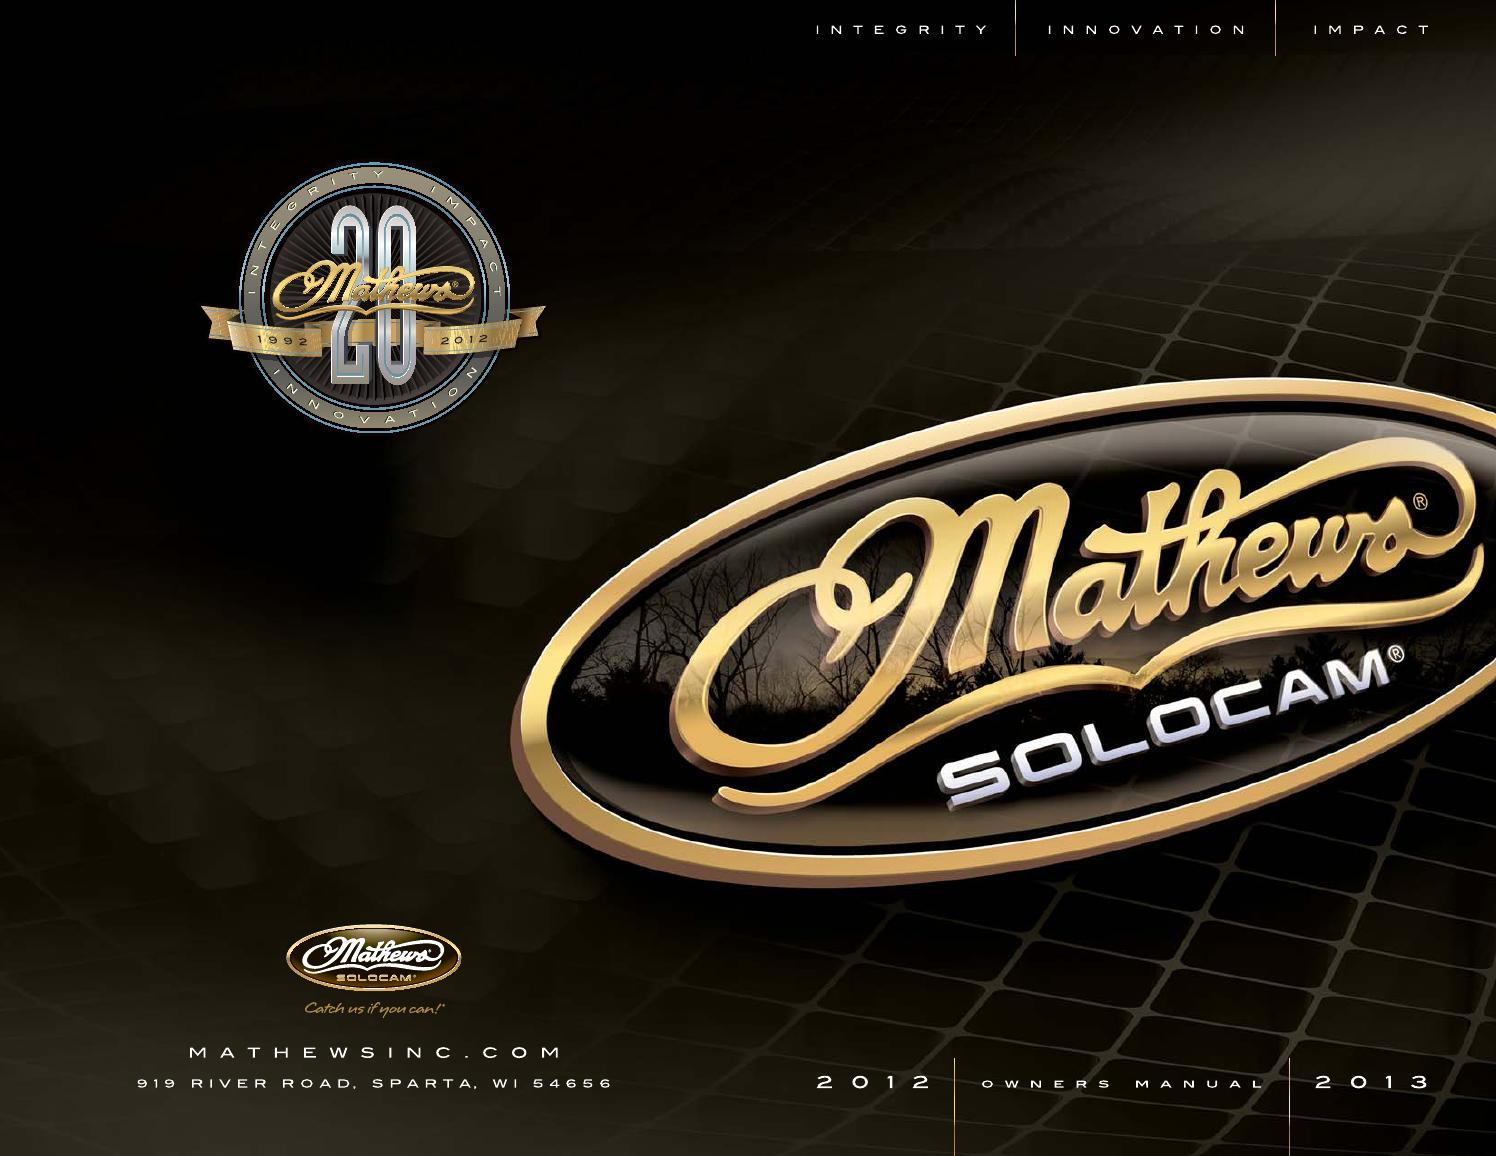 2012 2013 mathews owners manual by mathews inc issuu rh issuu com